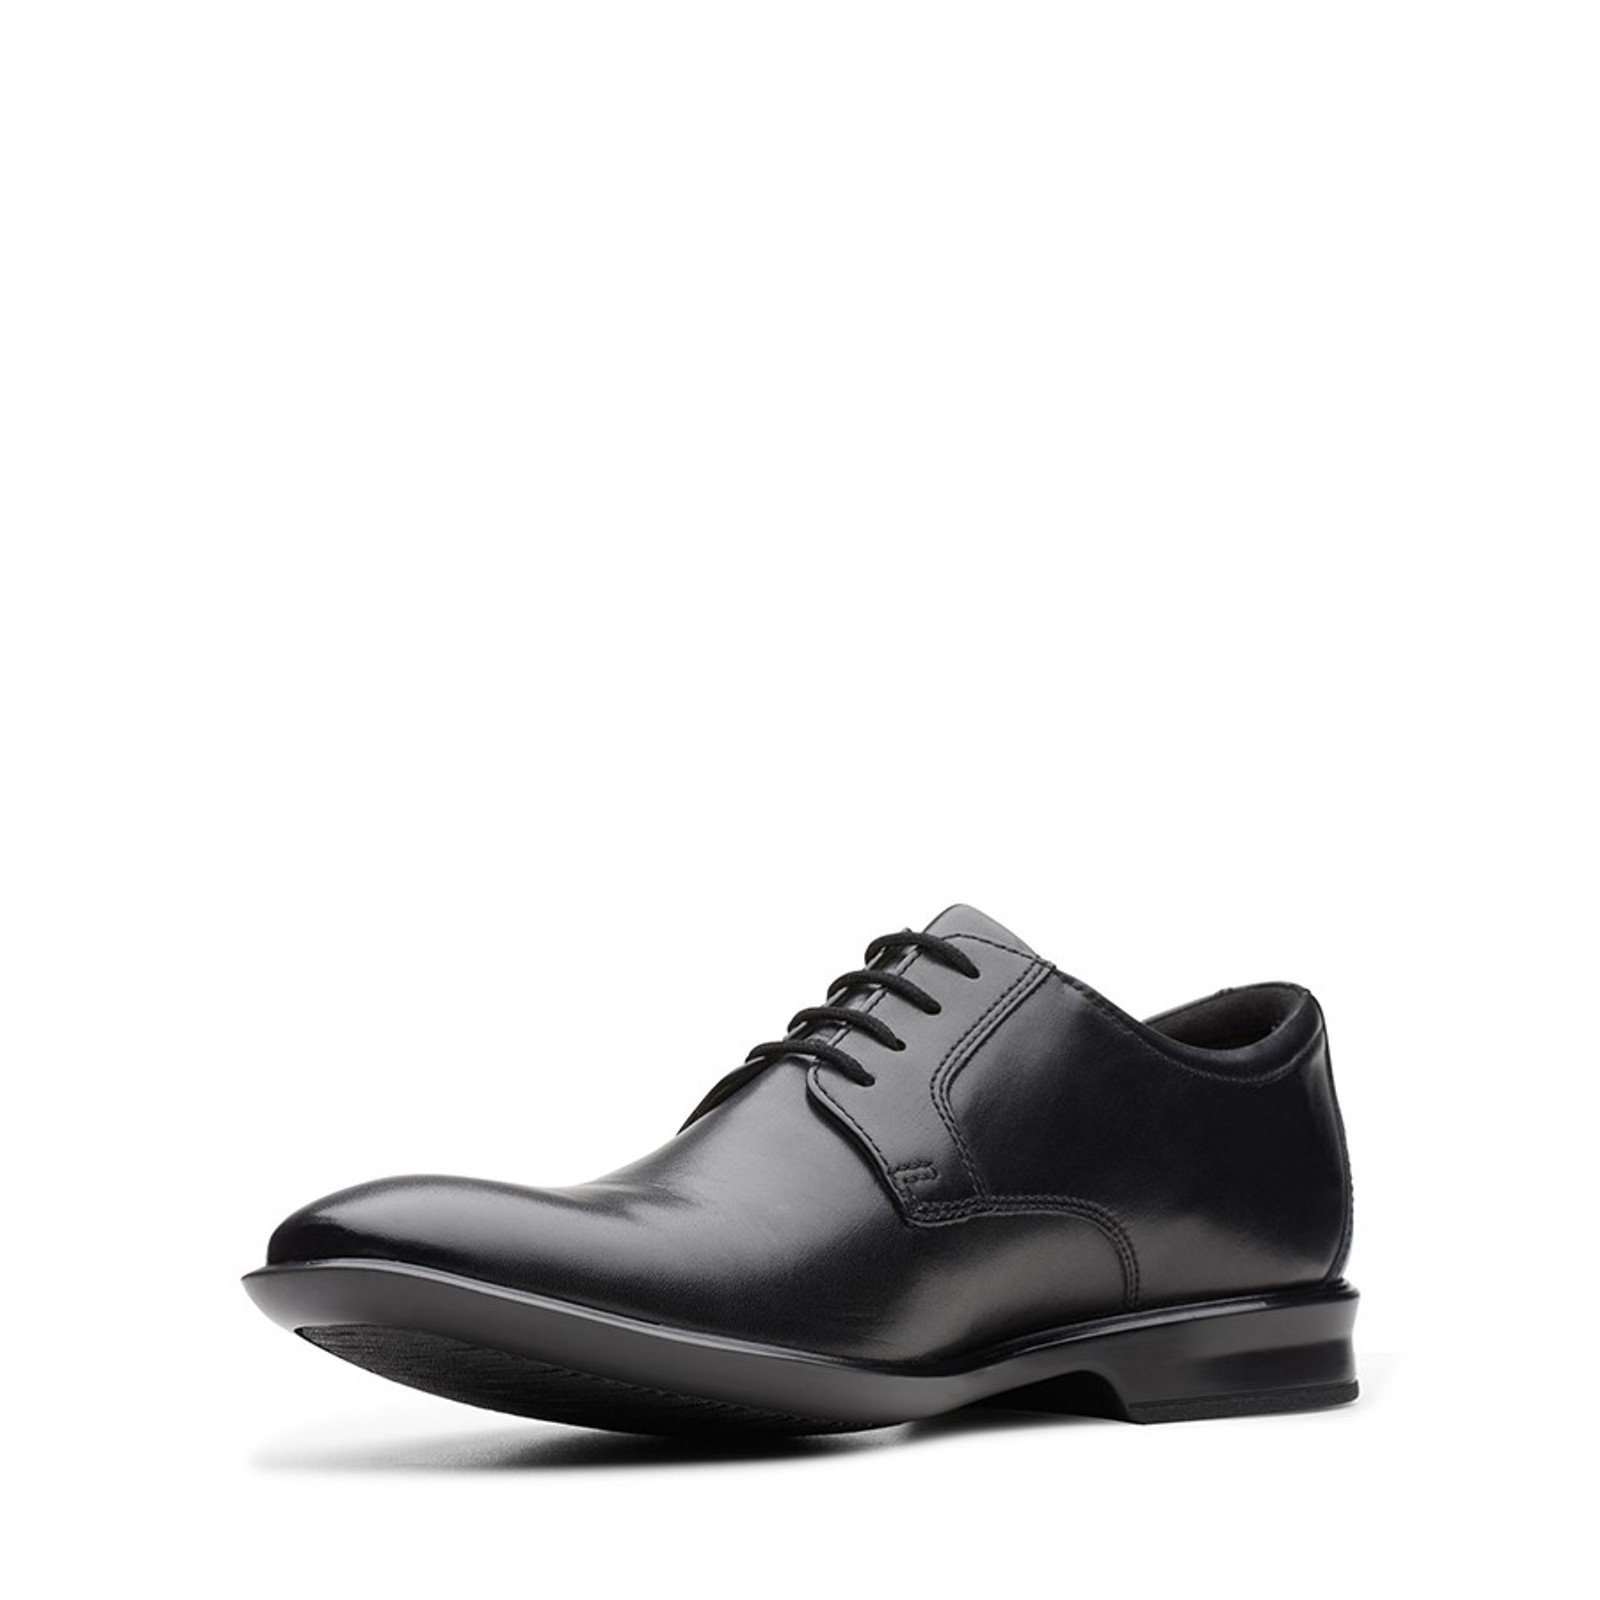 Clarks Mens BENSLEY LACE Black Leather